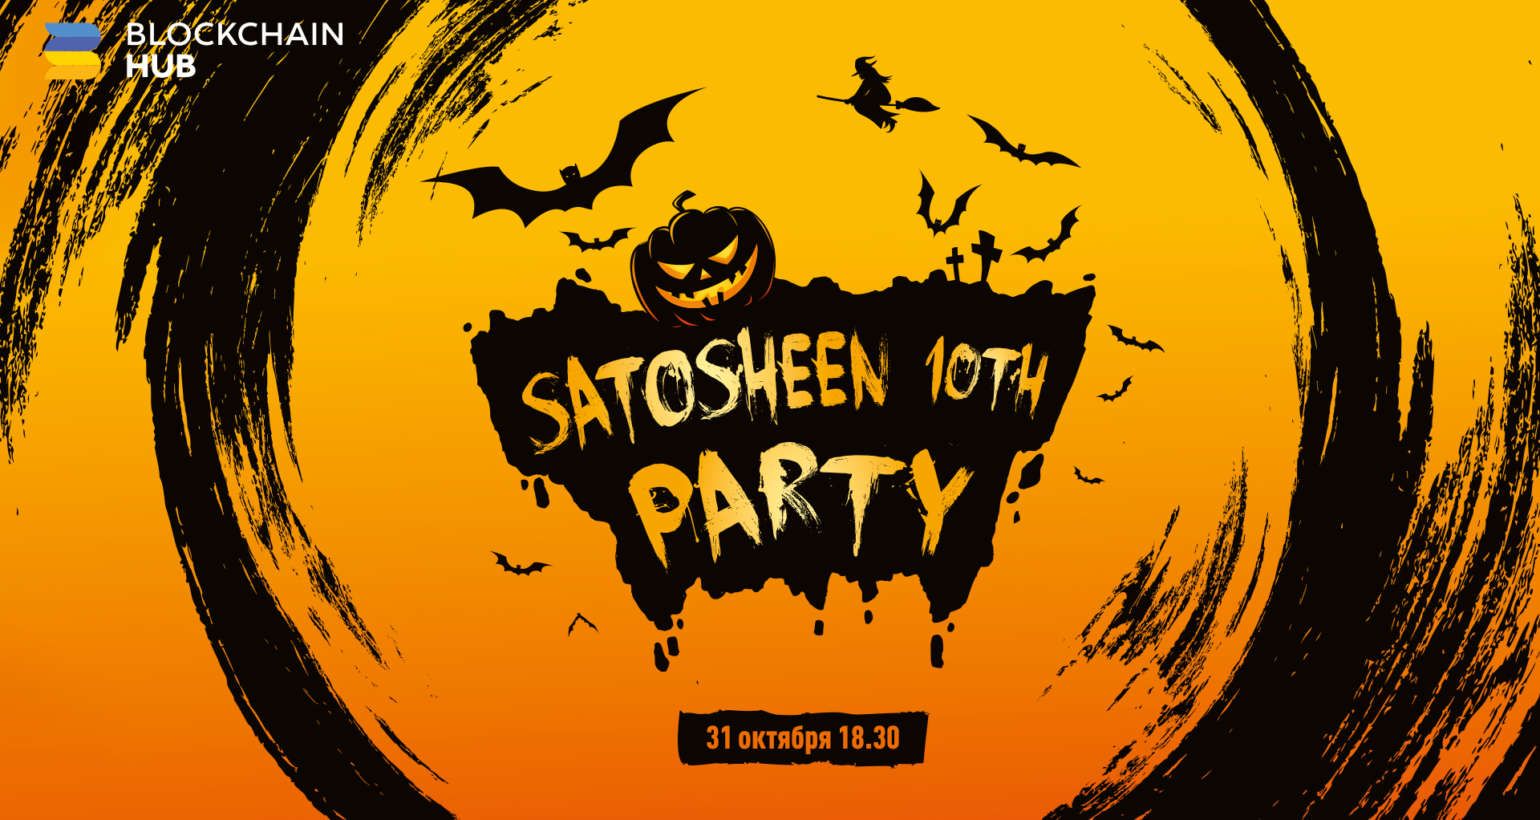 Satosheen 10th party